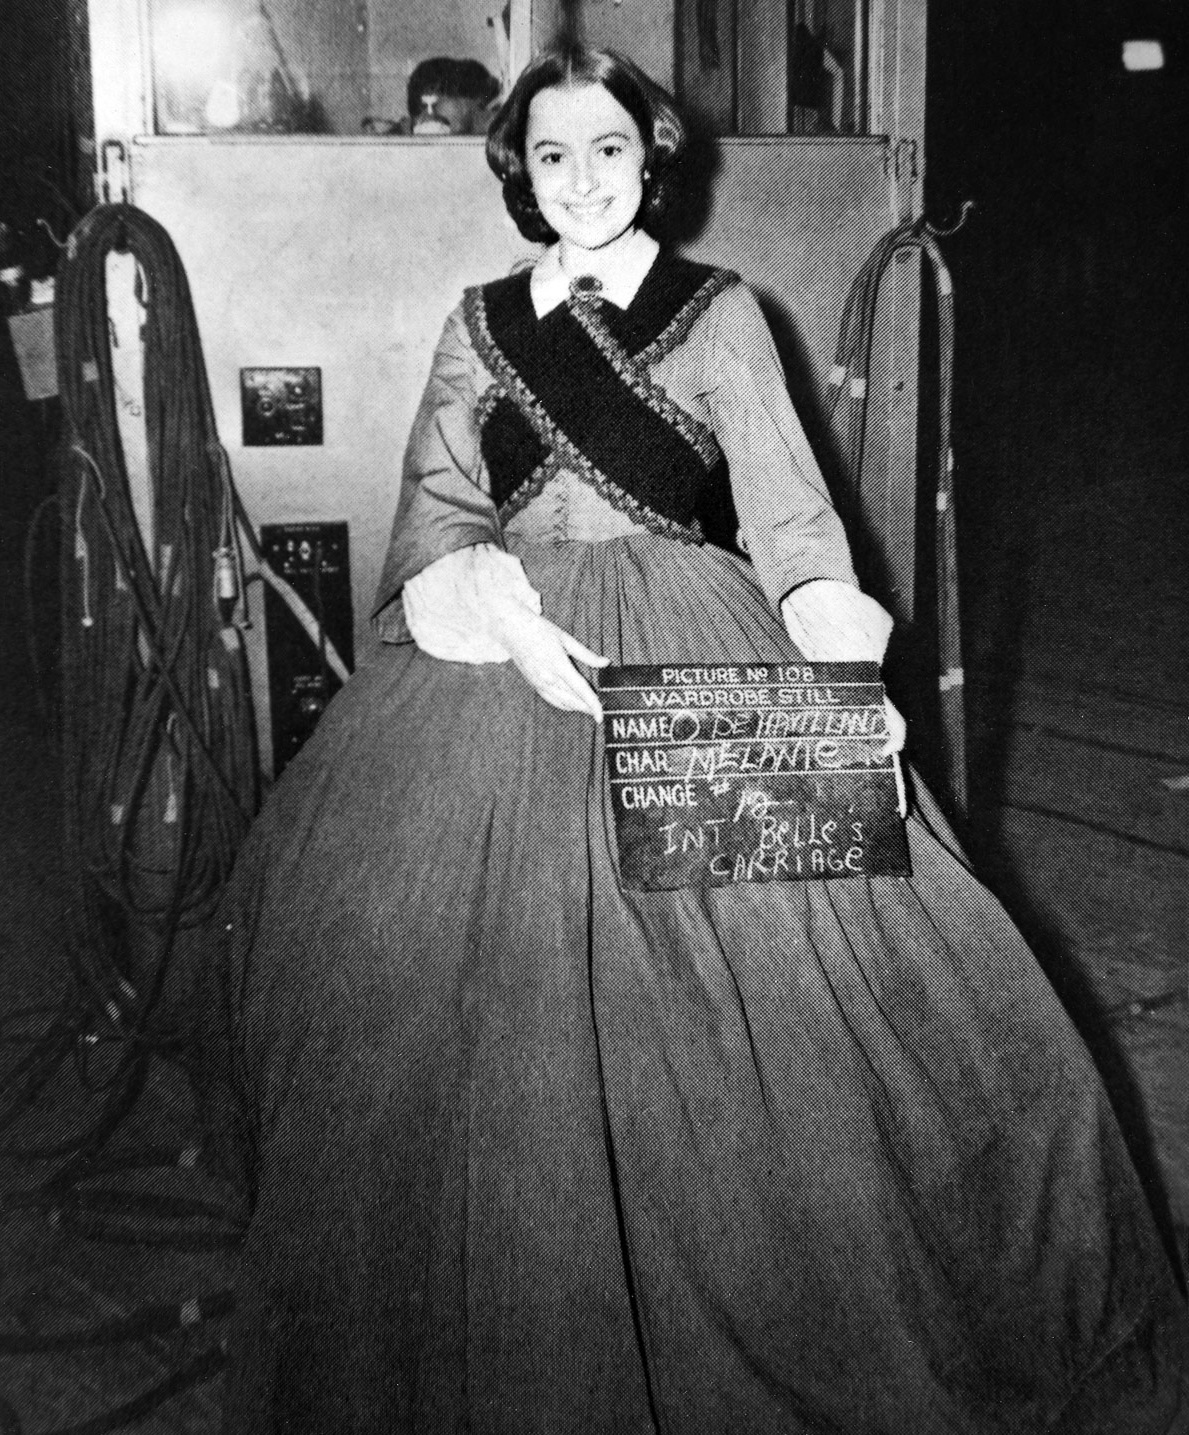 Olivia de Havilland as Melanie Hamilton on the set of Gone with the Wind in 1939.